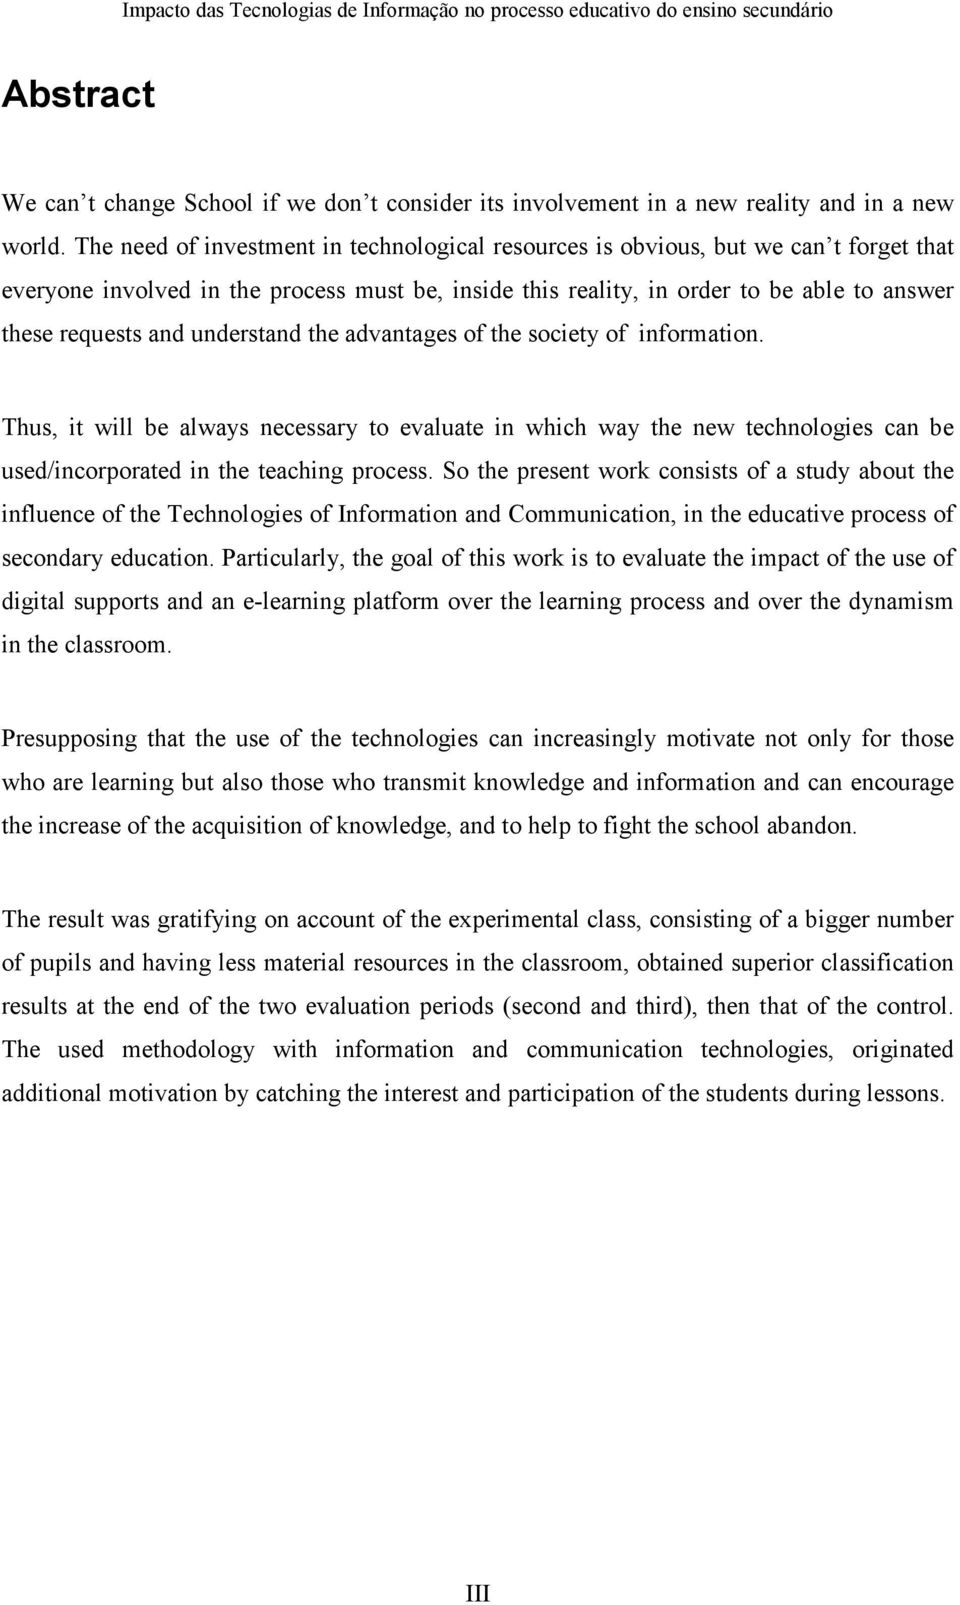 understand the advantages of the society of information. Thus, it will be always necessary to evaluate in which way the new technologies can be used/incorporated in the teaching process.